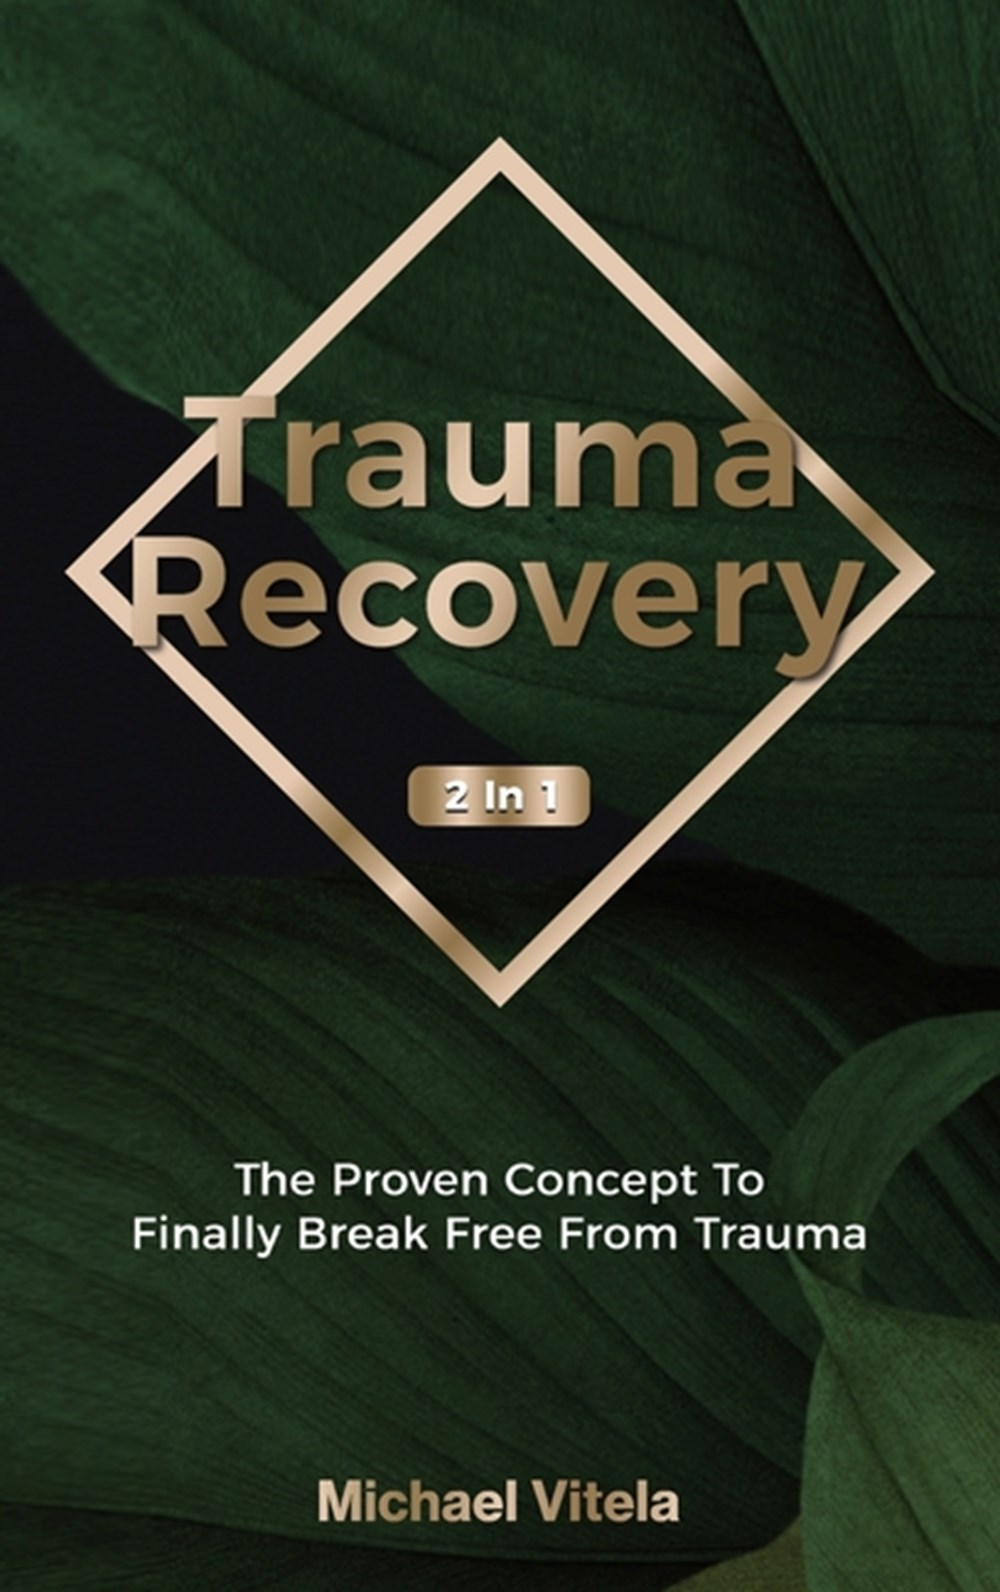 Trauma Recovery 2 In 1 The Proven Concept To Finally Break Free From Trauma